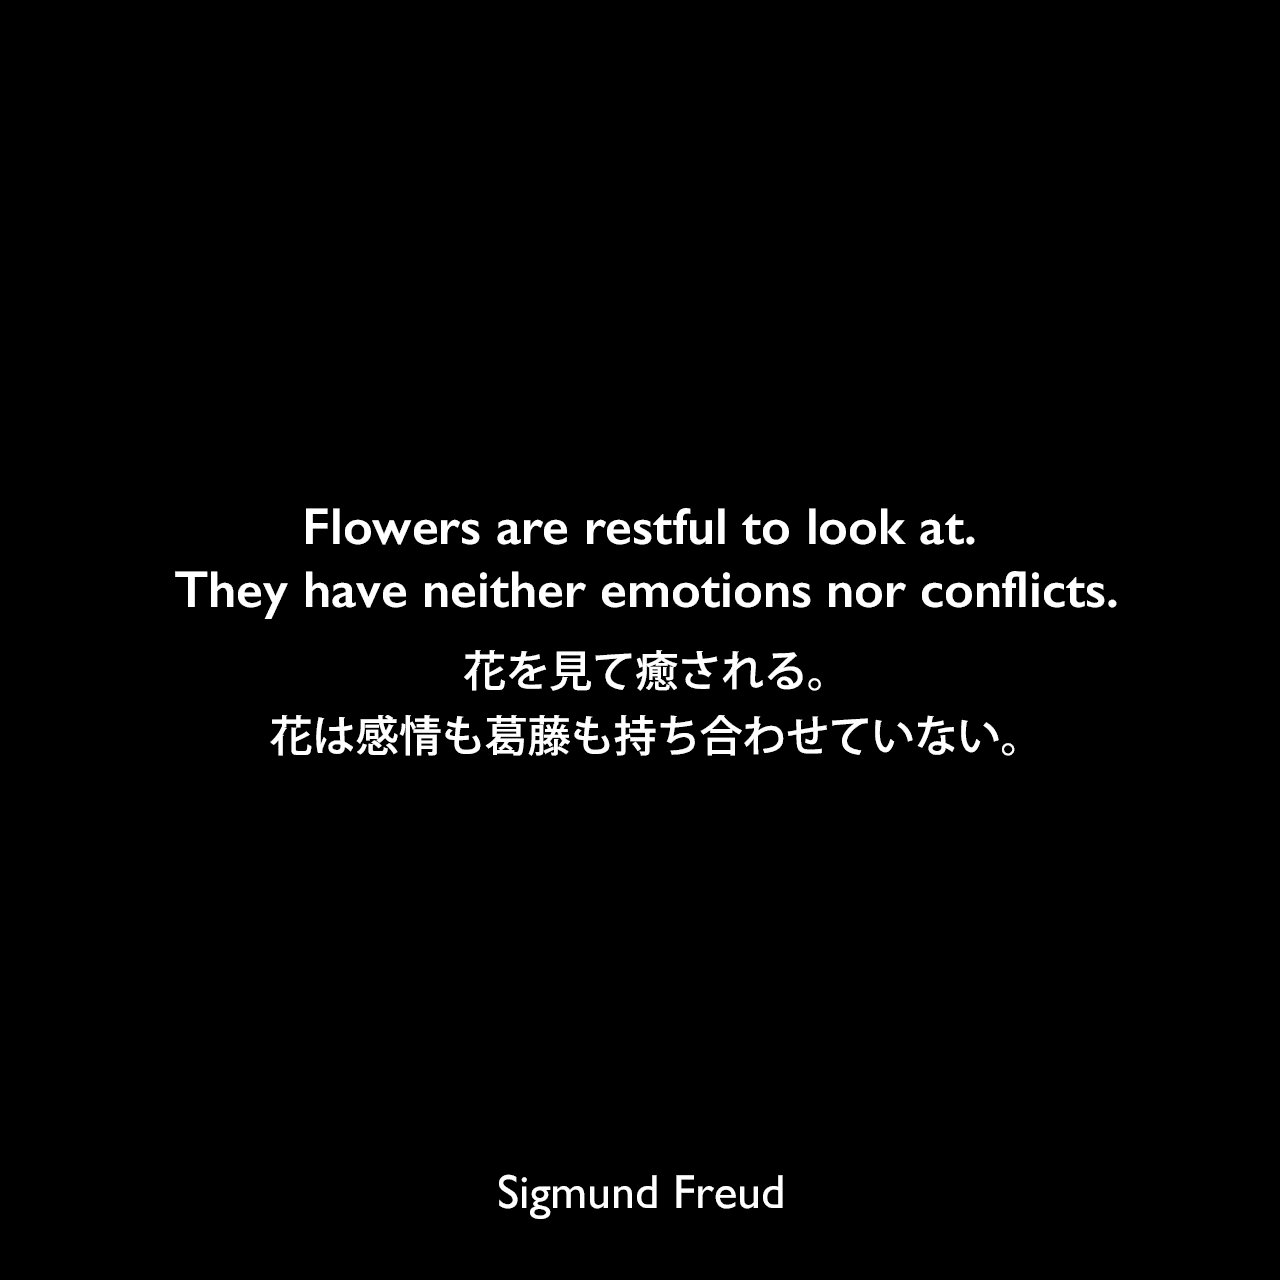 Flowers are restful to look at. They have neither emotions nor conflicts.花を見て癒される。花は感情も葛藤も持ち合わせていない。Sigmund Freud